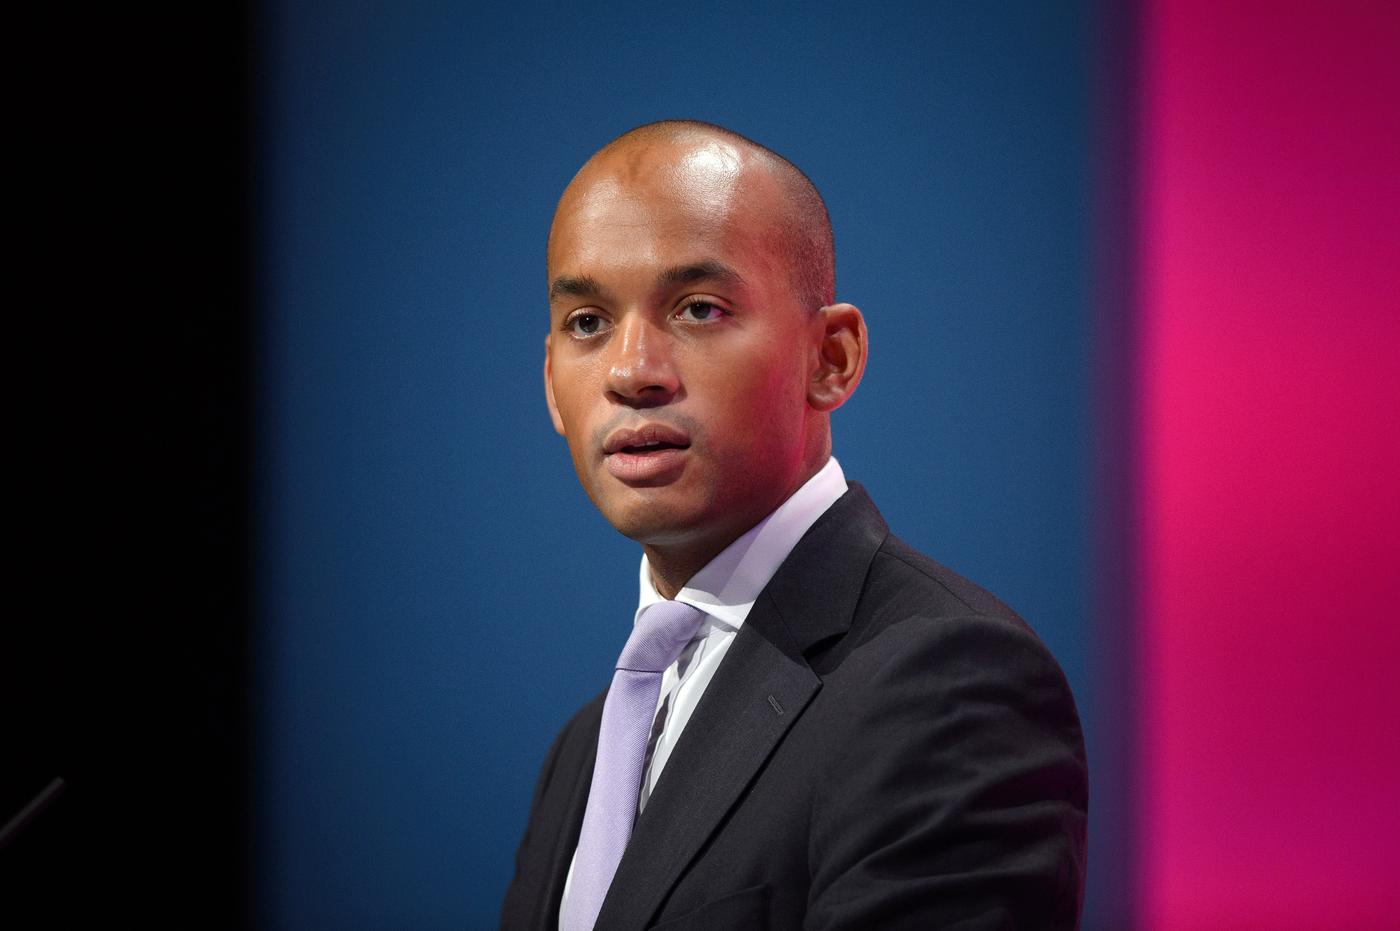 Chuka Umunna withdraws from Labour leadership race: Statement in full